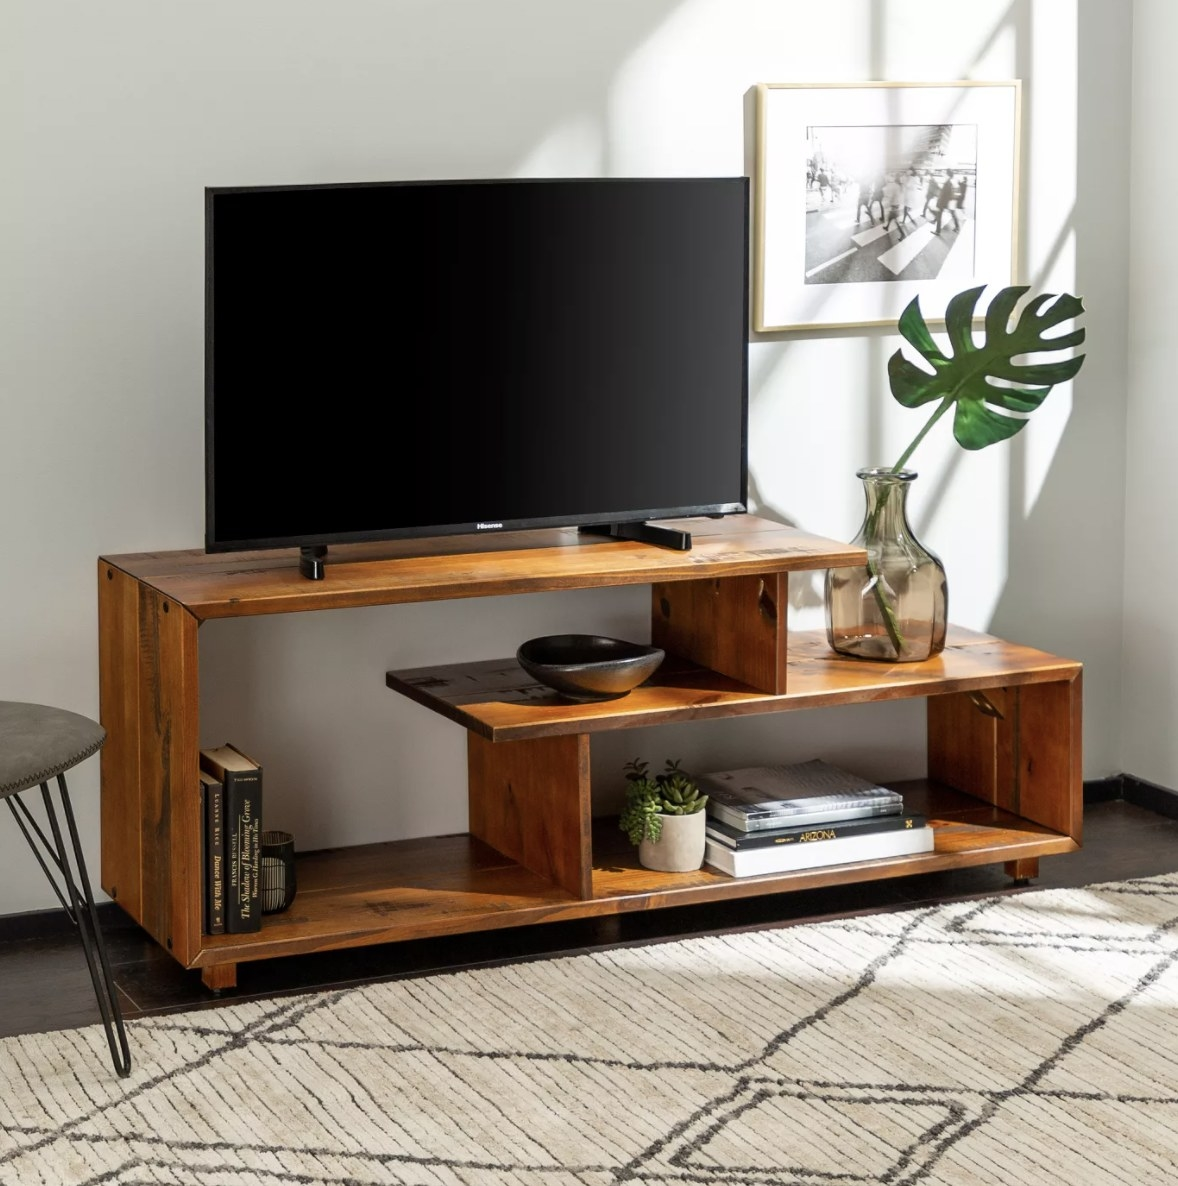 the tv stand with a tv on top of it and books, vases, and plants inside of it on top of a carpet